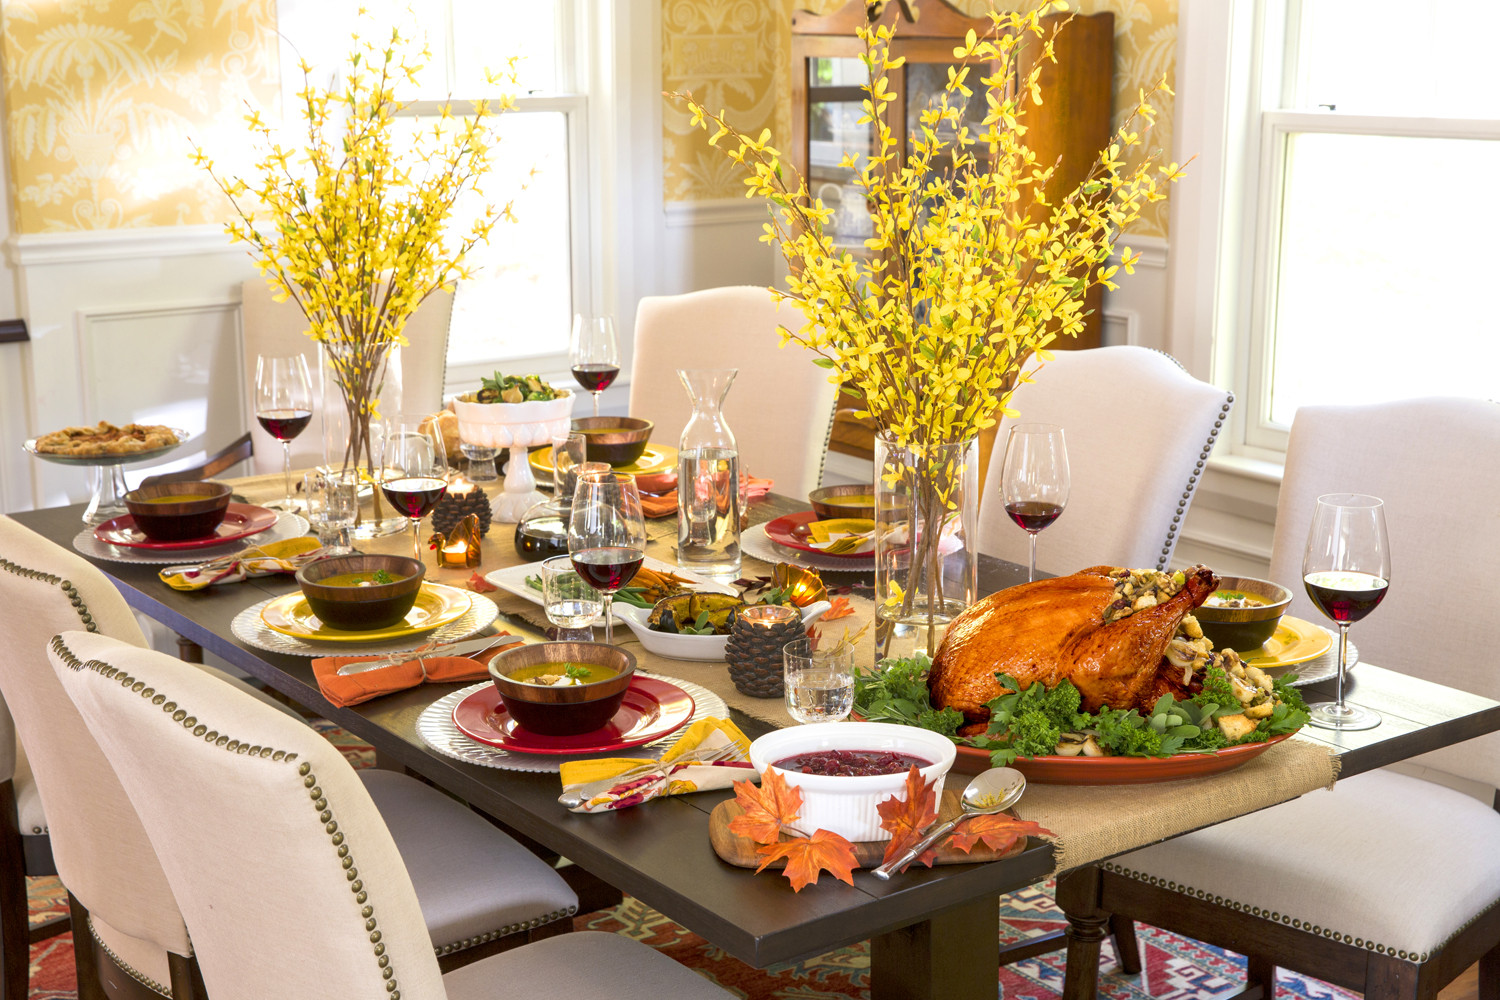 Thanksgiving Dinner Table Decorations  Thanksgiving Table Decor Easy as 1 2 3